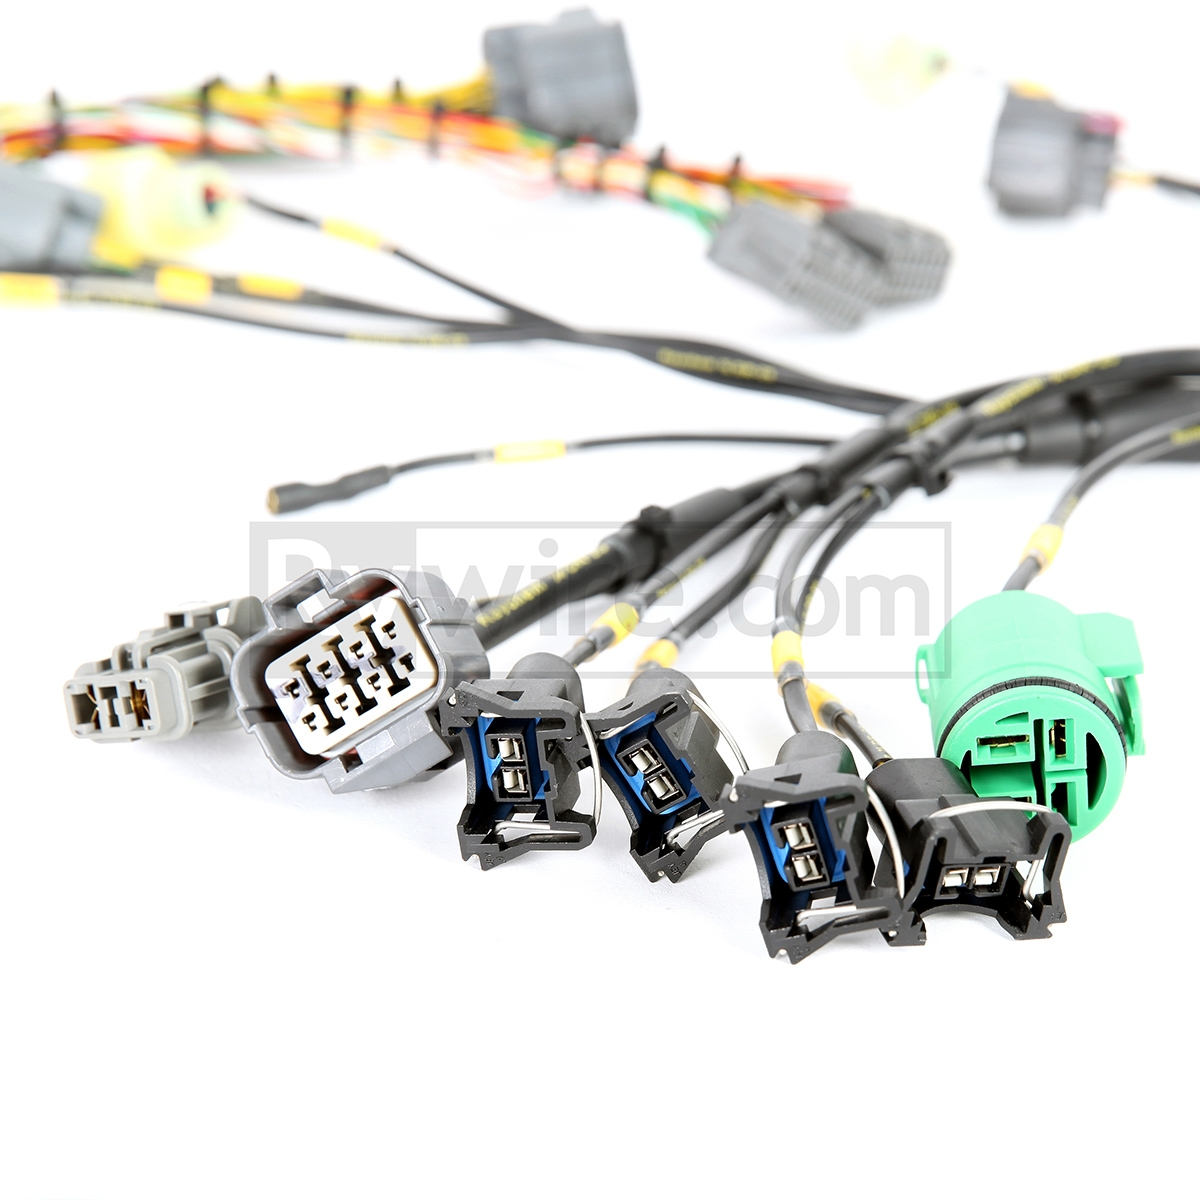 B1 Milspec 3?1402488654 obd1 mil spec d & b series tucked engine harness honda wiring harness connectors at gsmportal.co